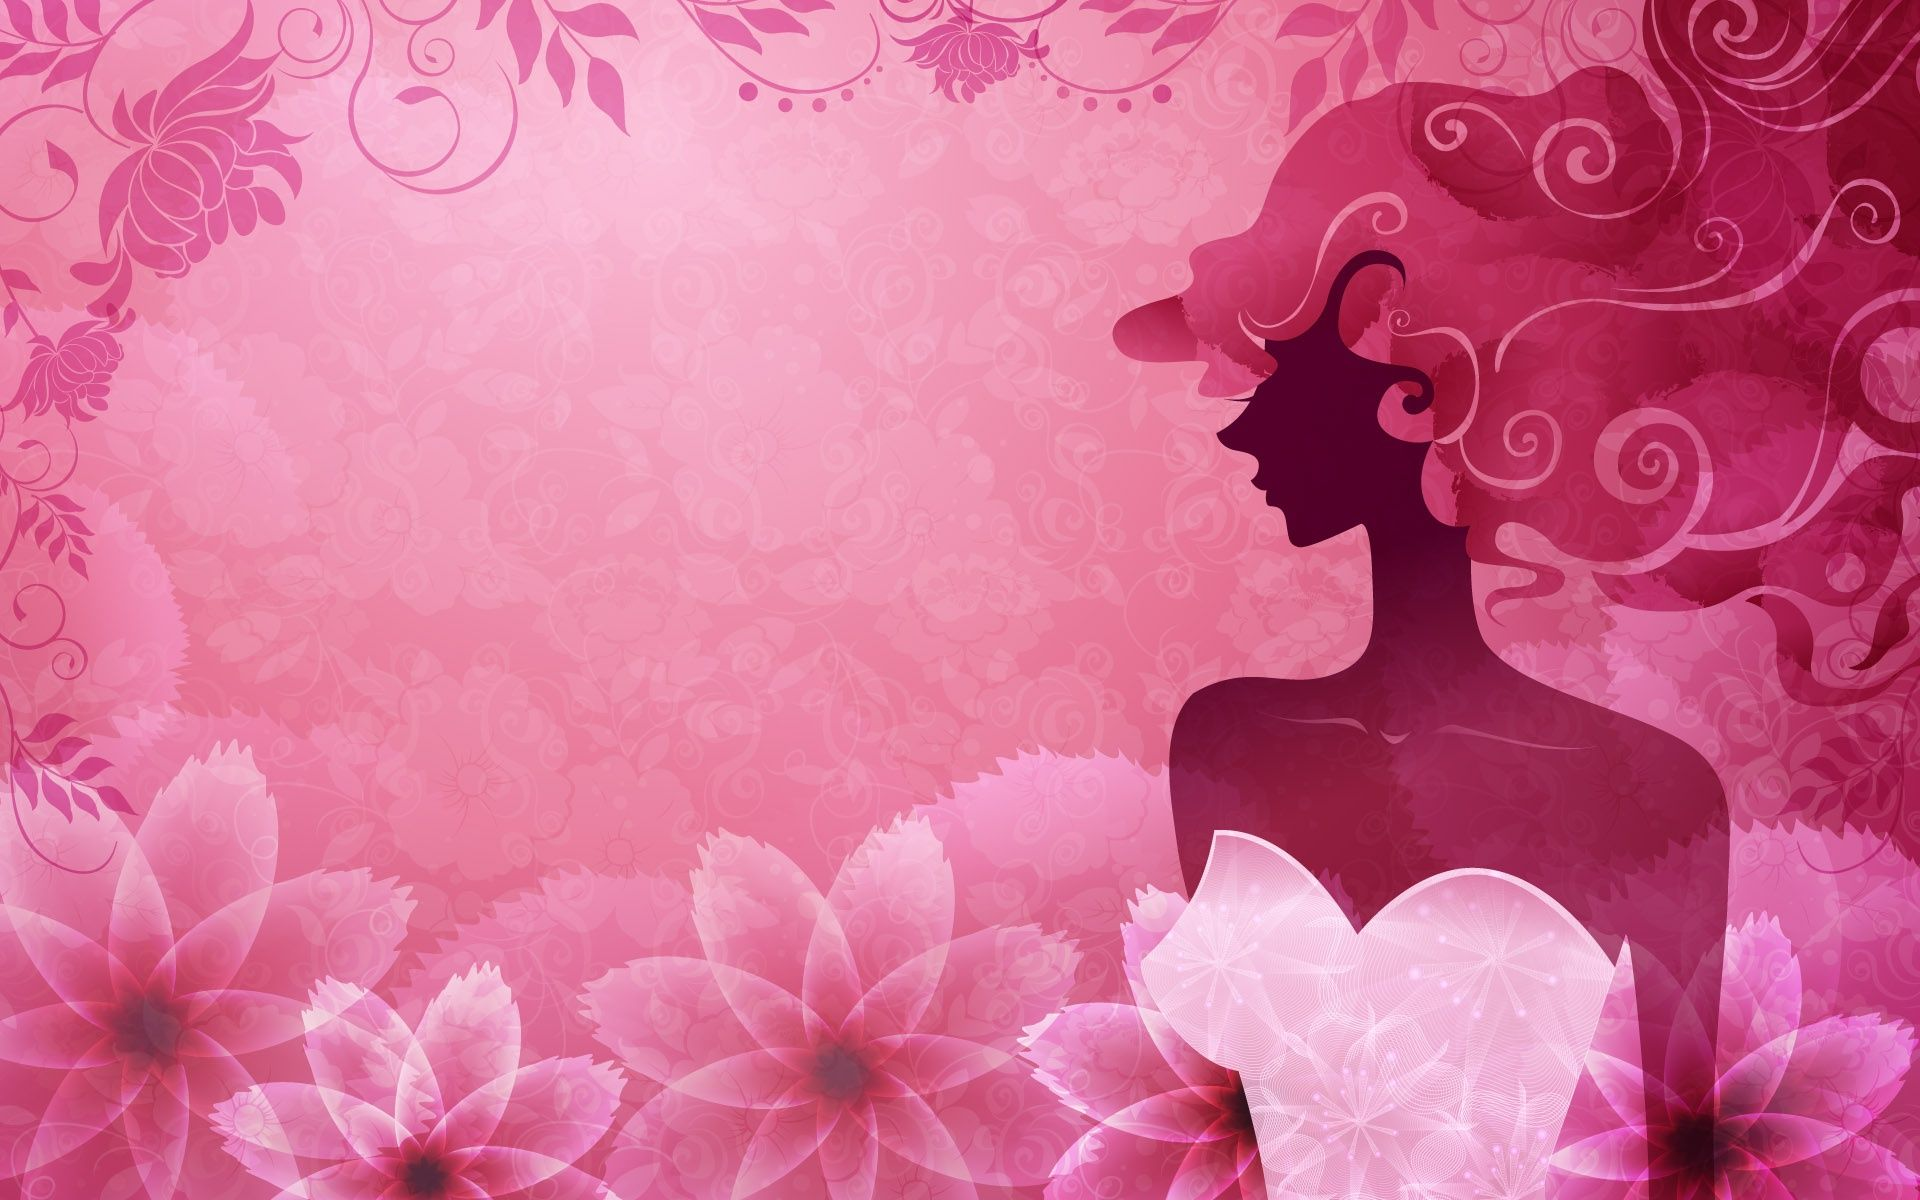 Cool wallpaper designs for girls cool background designs for Great wallpaper ideas